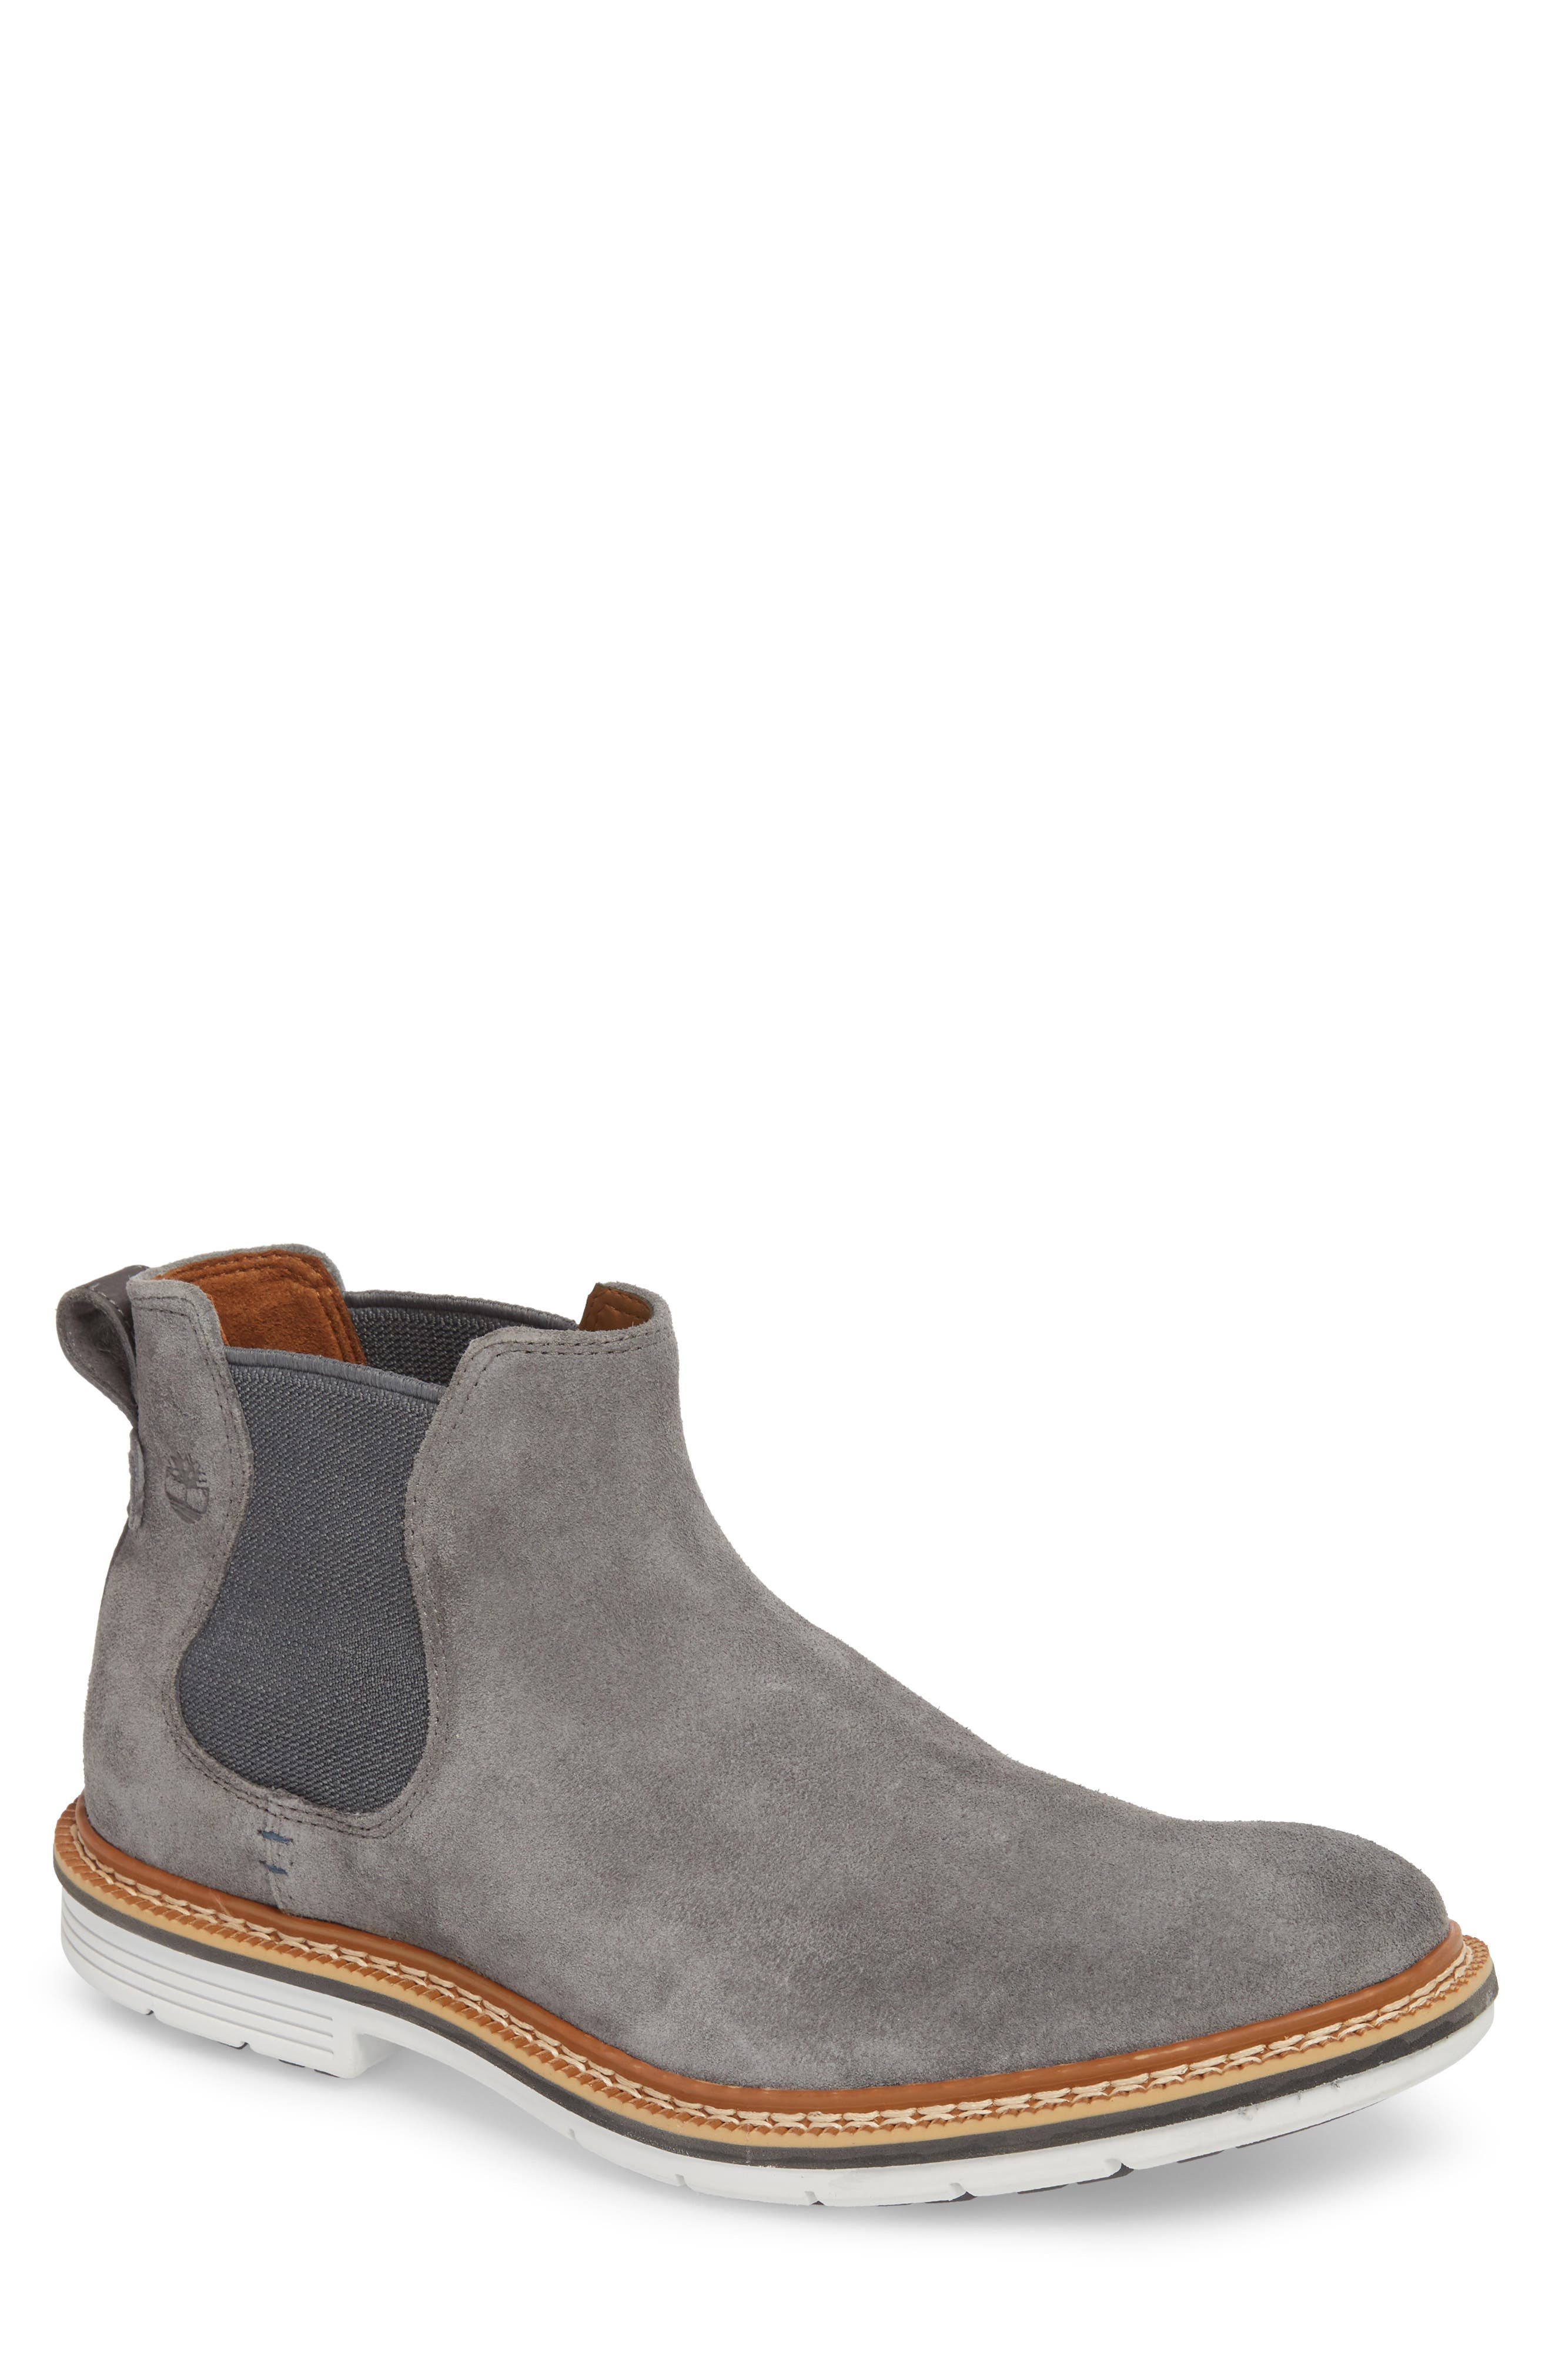 Suede Chelsea Naples Trail Boot Modesens Timberland Graphite In nqaxYzqwB7